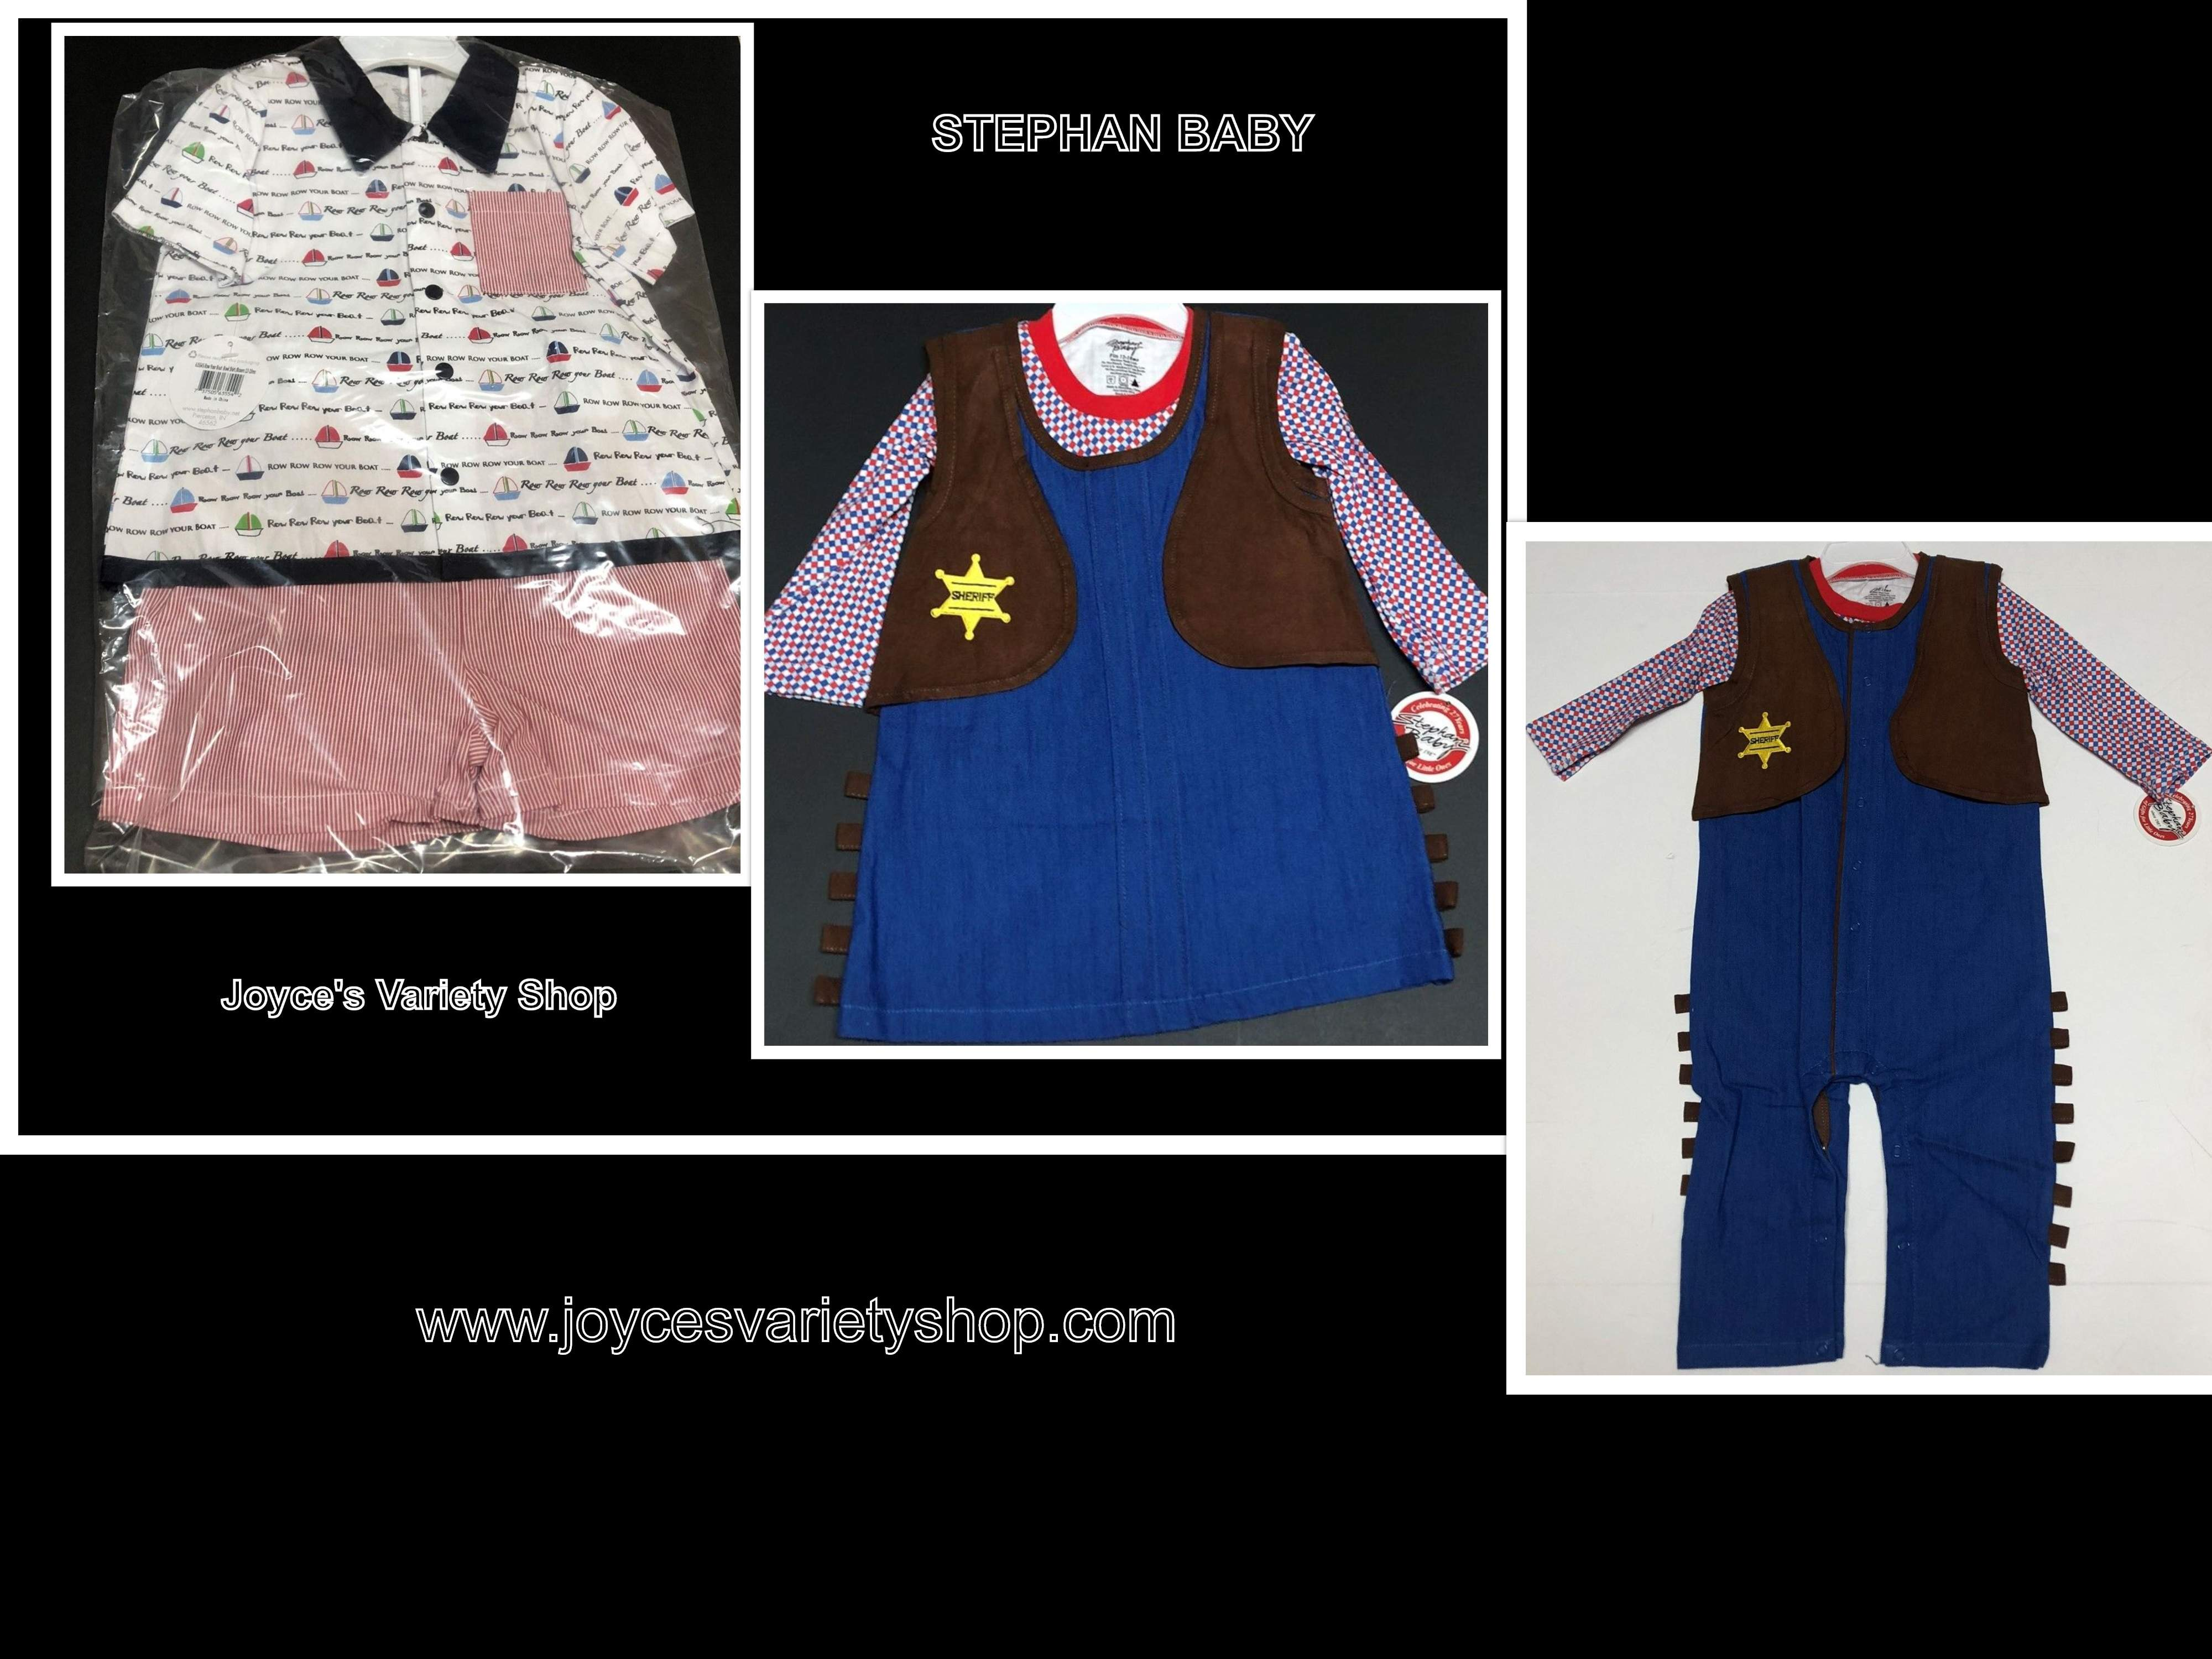 Stephan Baby 2 PC Outfit 100% Cotton 12-18 MOs Girl, Boy Western or Sailing Set